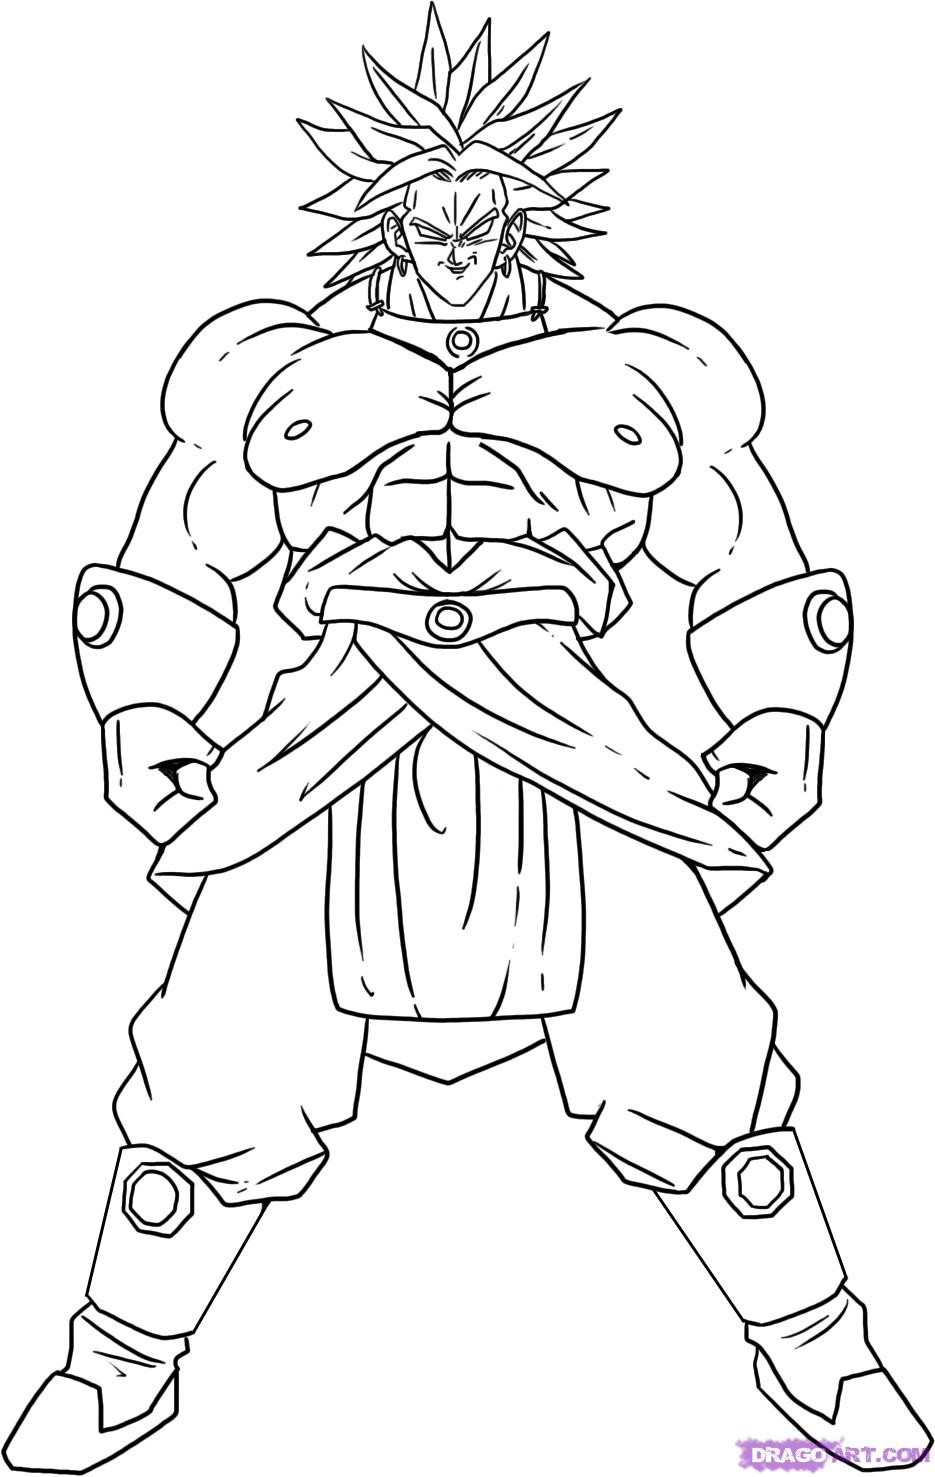 Dragon ball super coloring pages free printable dragon ball z coloring pages for kids